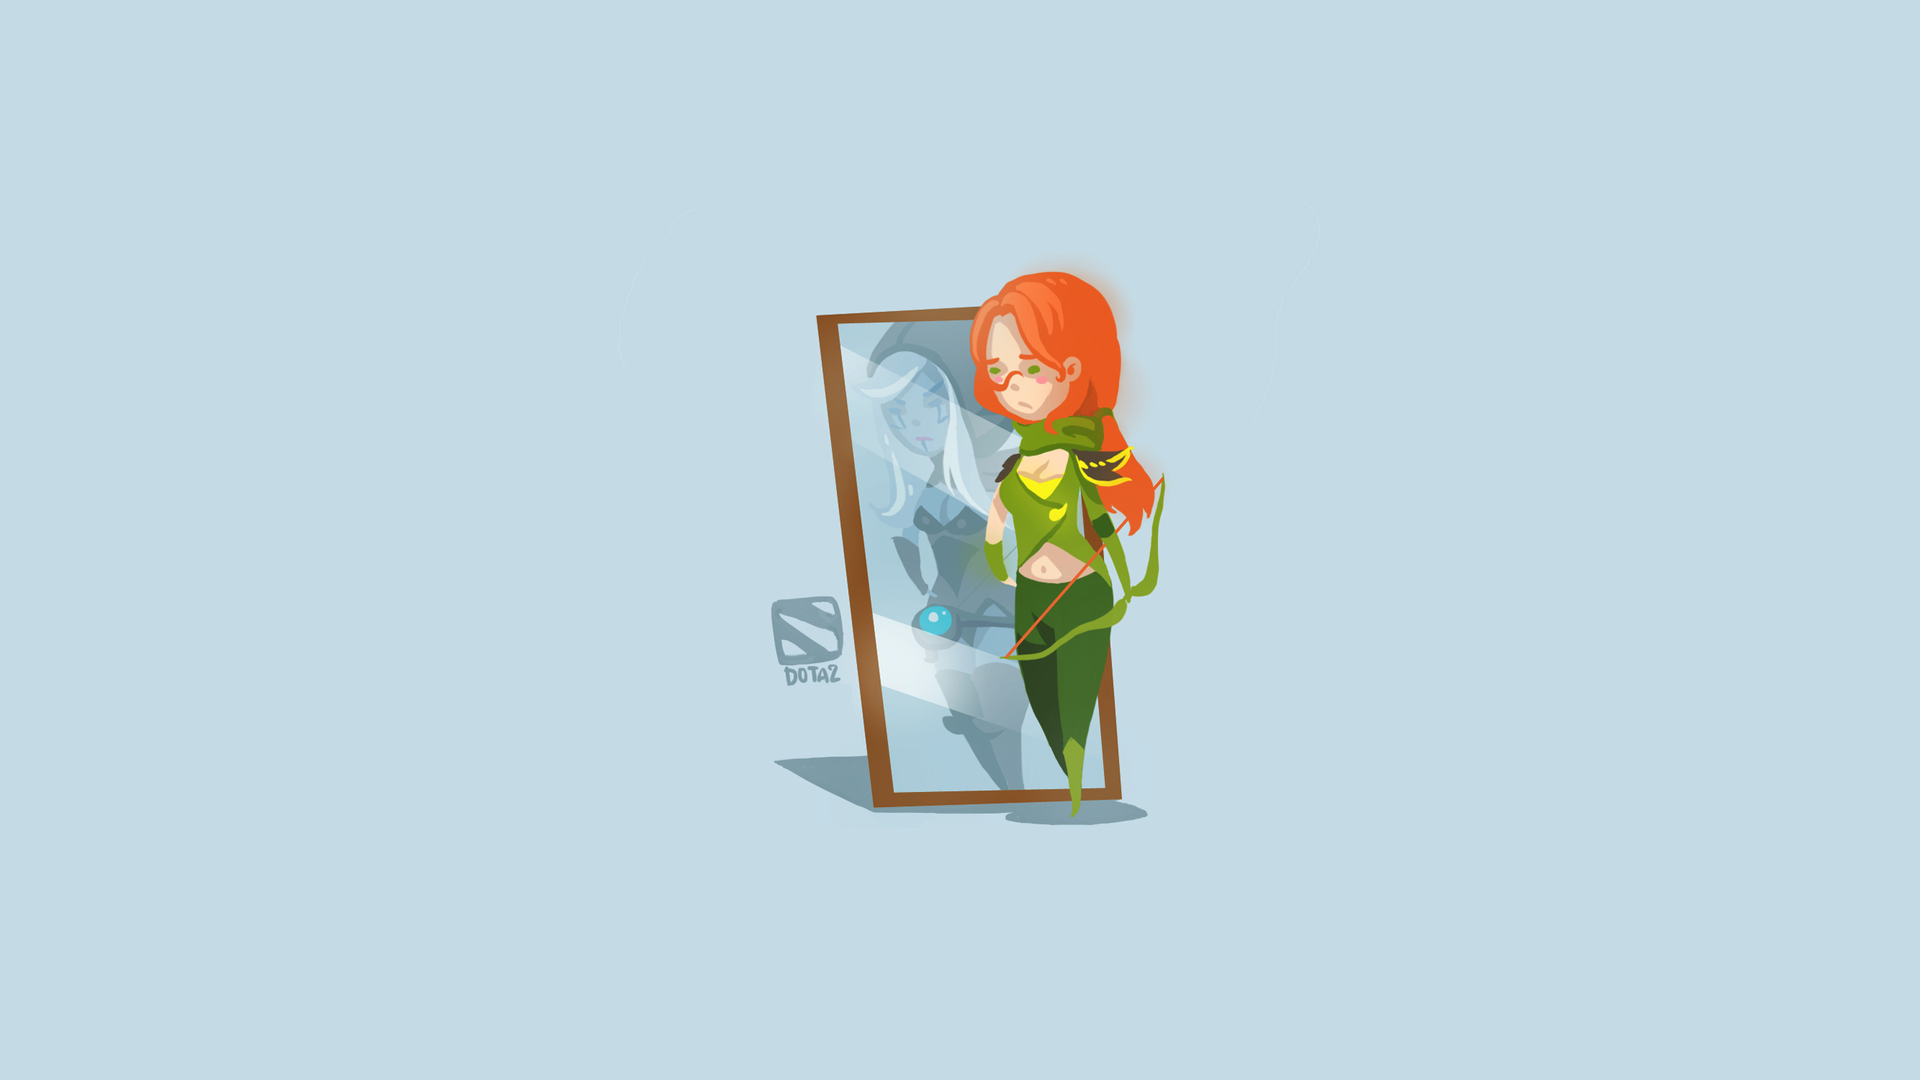 Alleria Windrunner seeing the Drow Ranger in the mirror